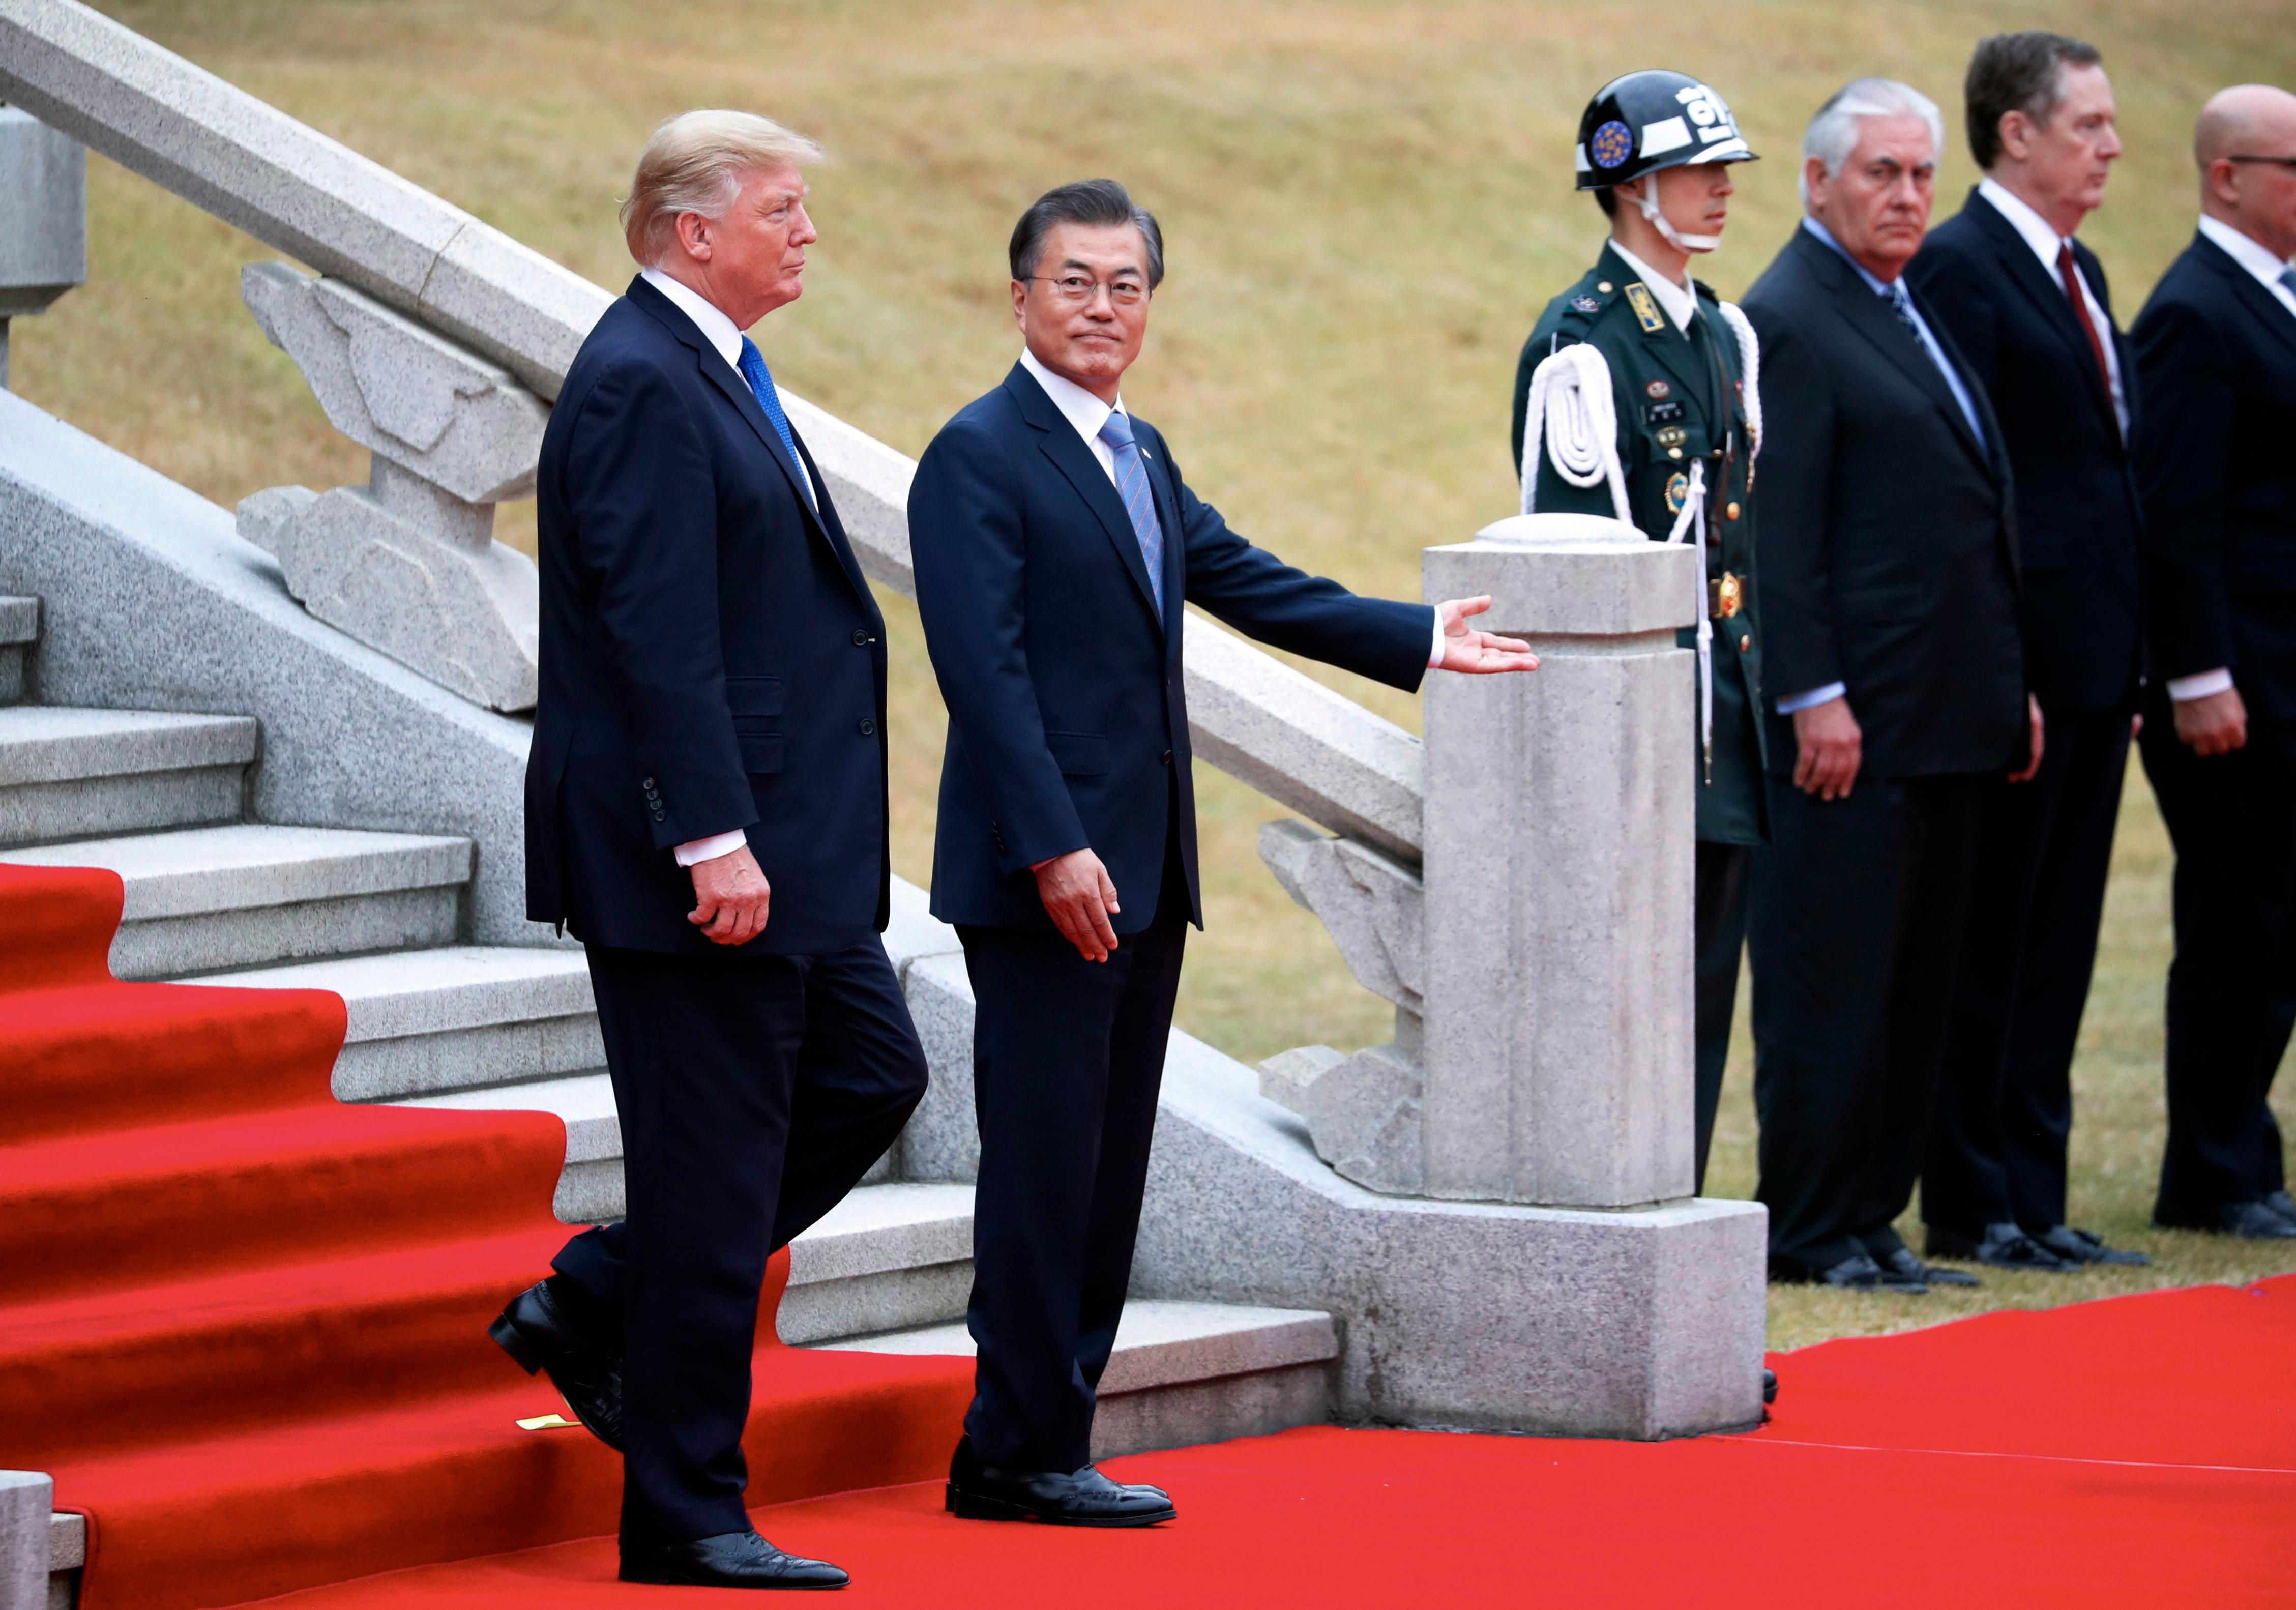 U.S. President Donald Trump, left, and South Korea's President Moon Jae-in attend a welcoming ceremony at the Presidential Blue House in Seoul Tuesday, Nov. 7, 2017. (Kim Hong-ji/Pool Photo via AP)